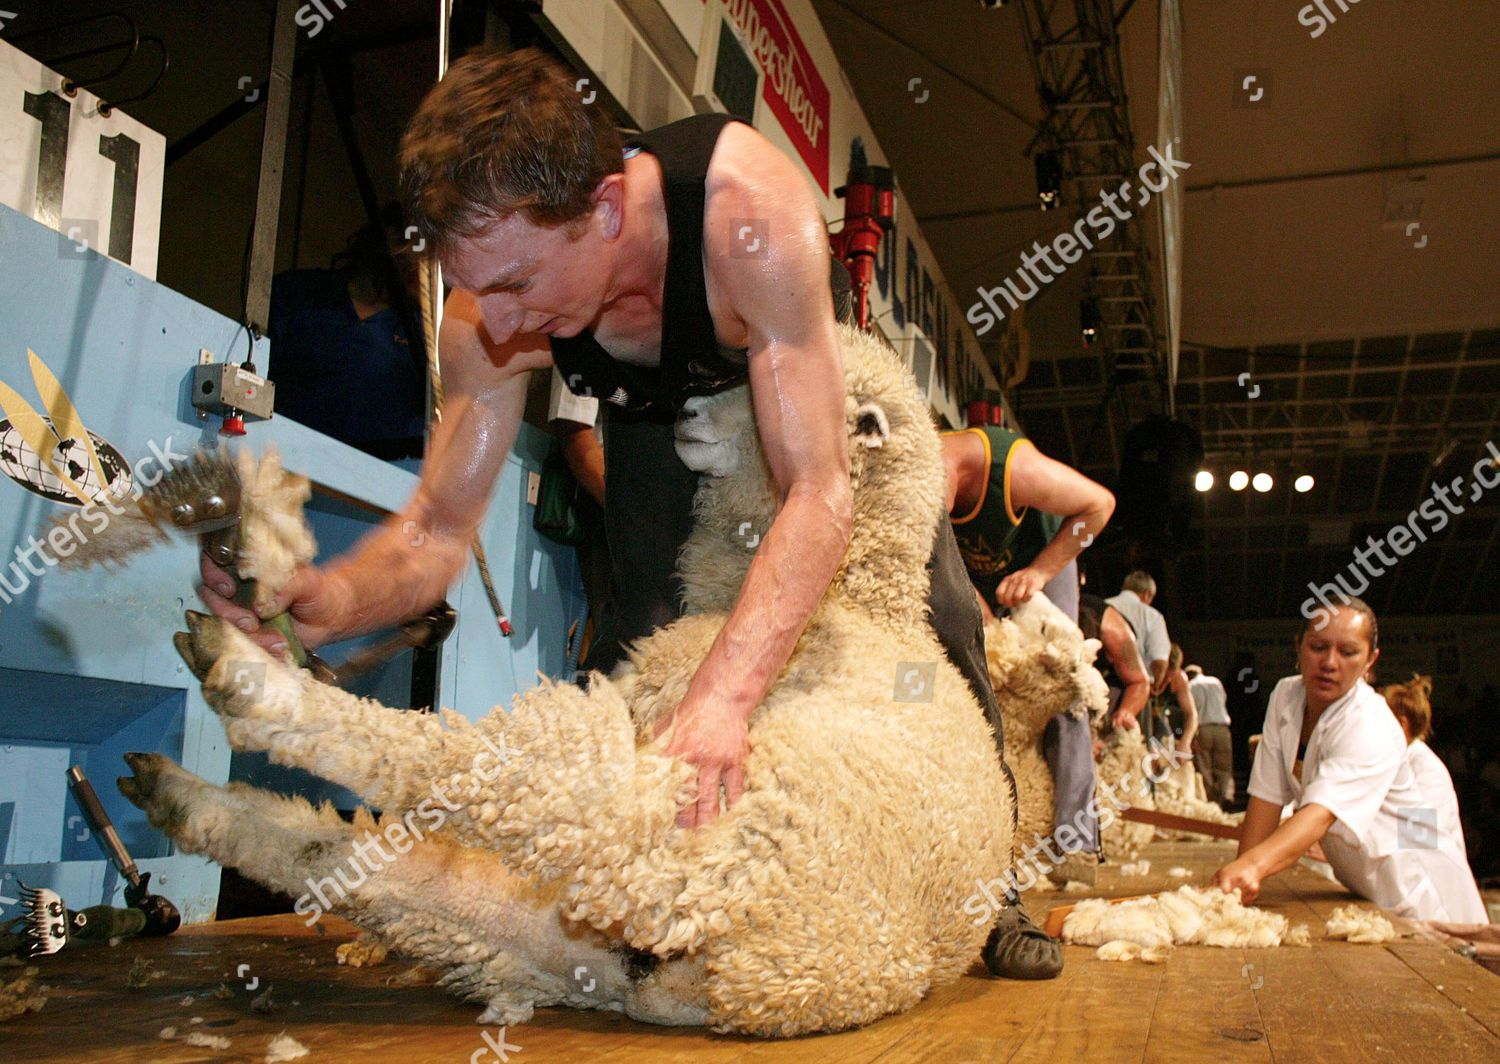 Golden Shears International Sheep Shearing Championships